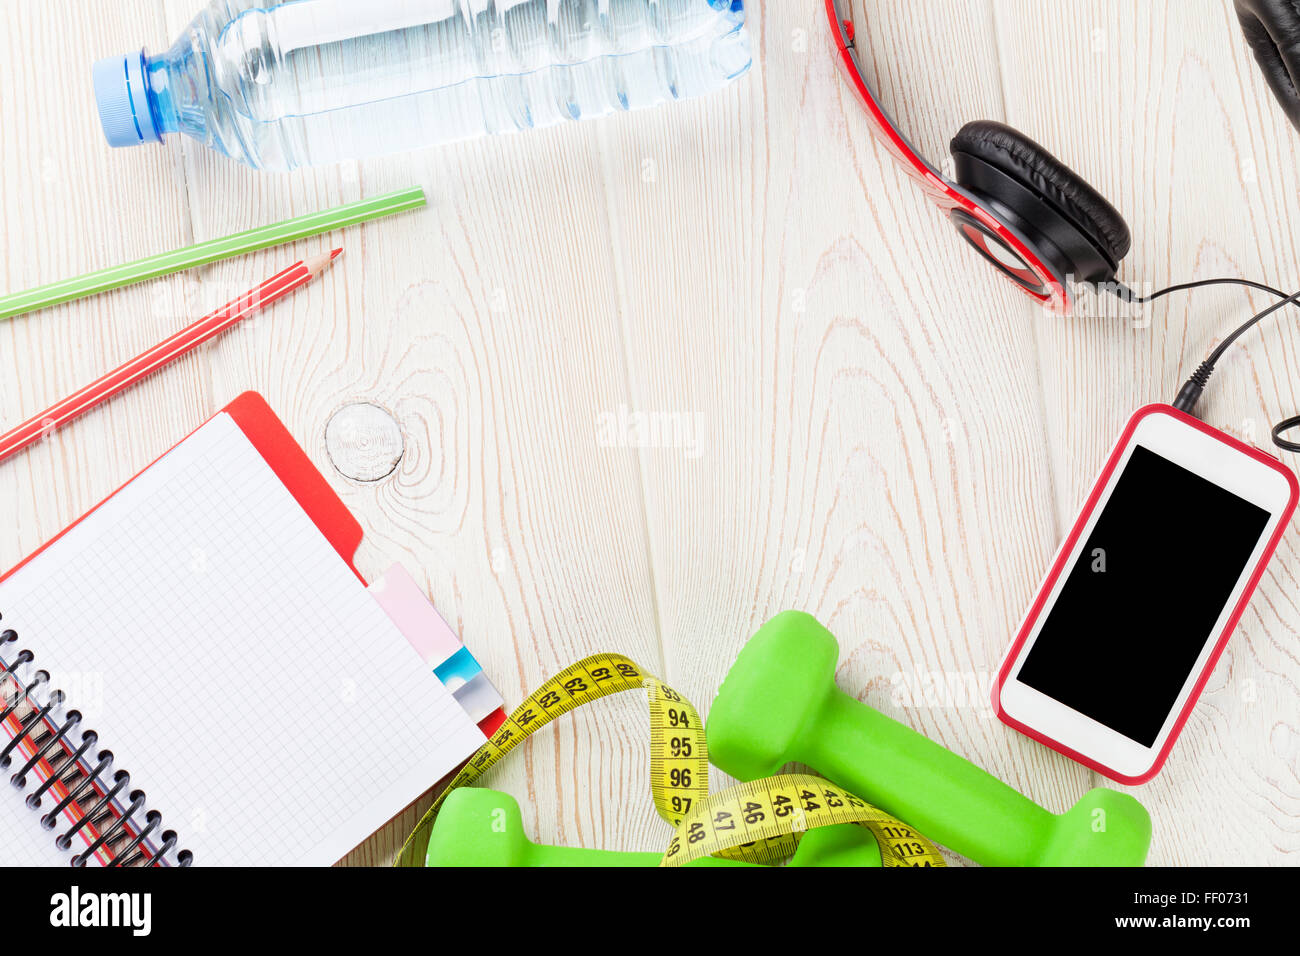 Health and fitness concept. Dumbbells, water bottle, smartphone, headphones and notepad. Top view with copy space - Stock Image